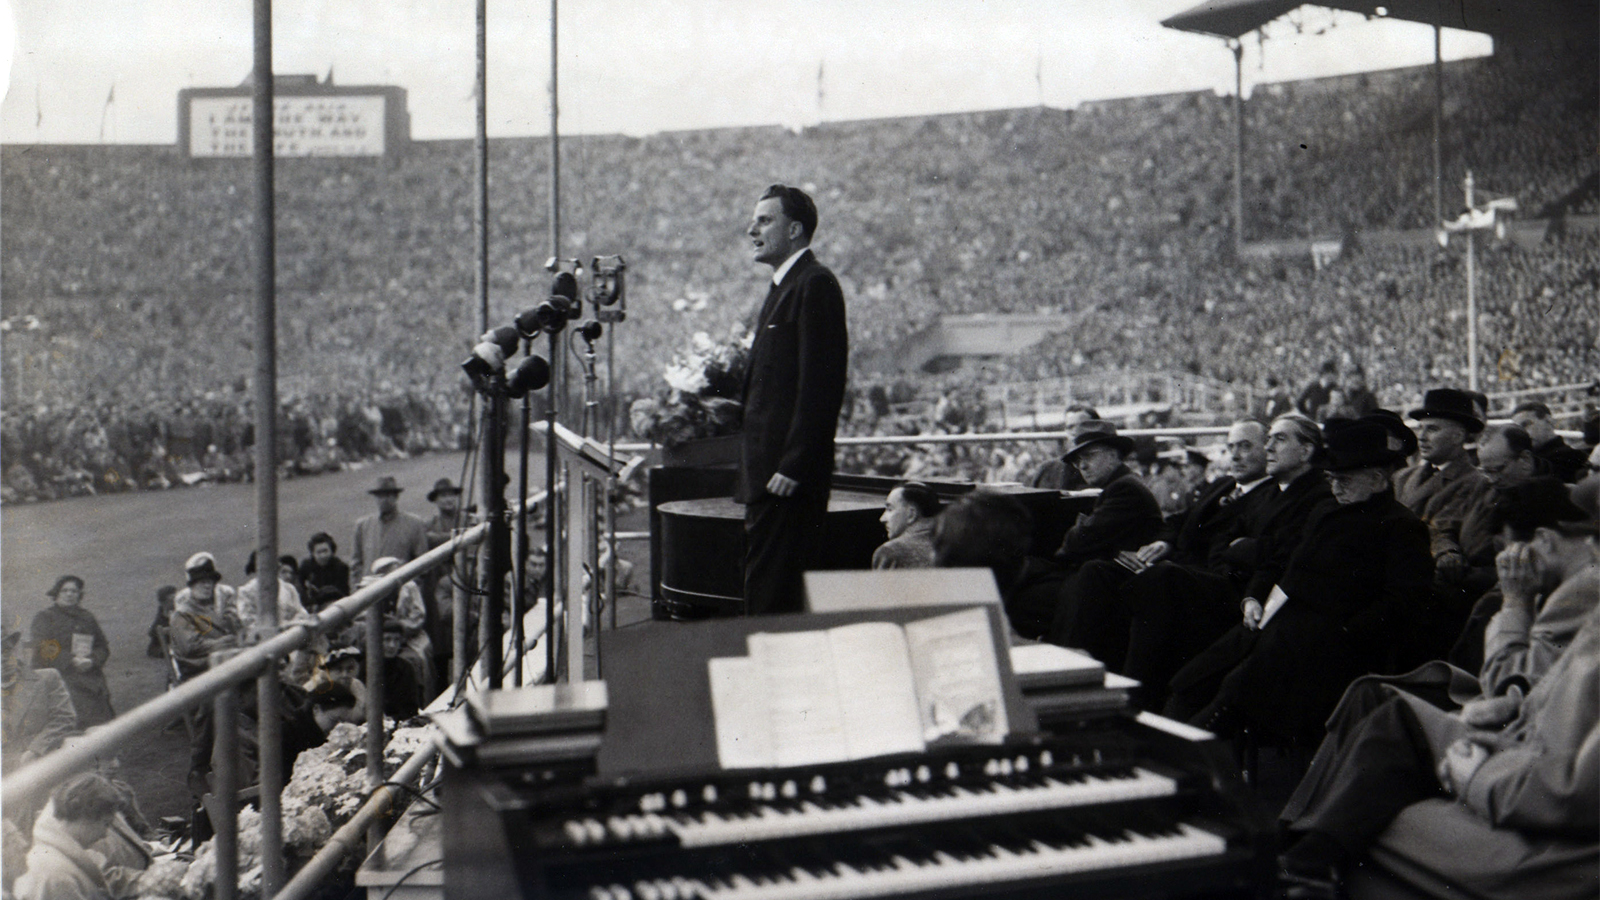 Billy Graham at London Crusade